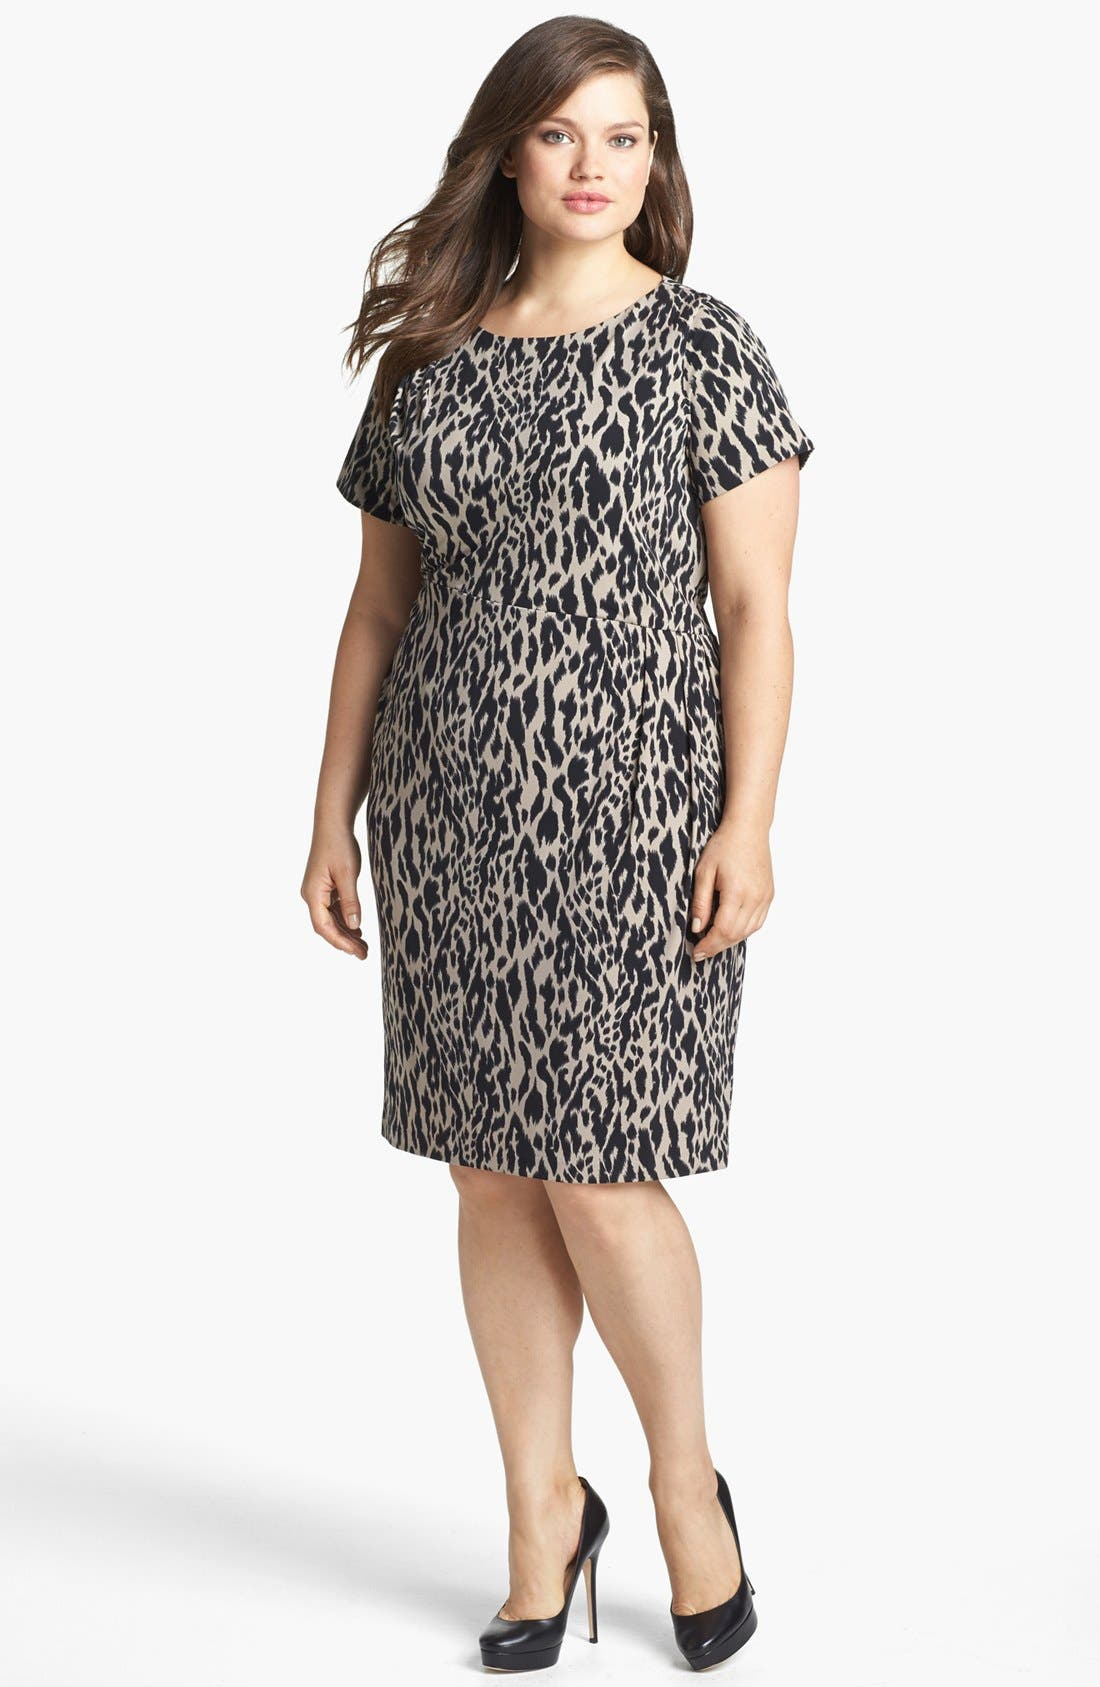 Alternate Image 1 Selected - Vince Camuto Animal Print Ruched Sheath Dress (Plus Size) (Online Only)